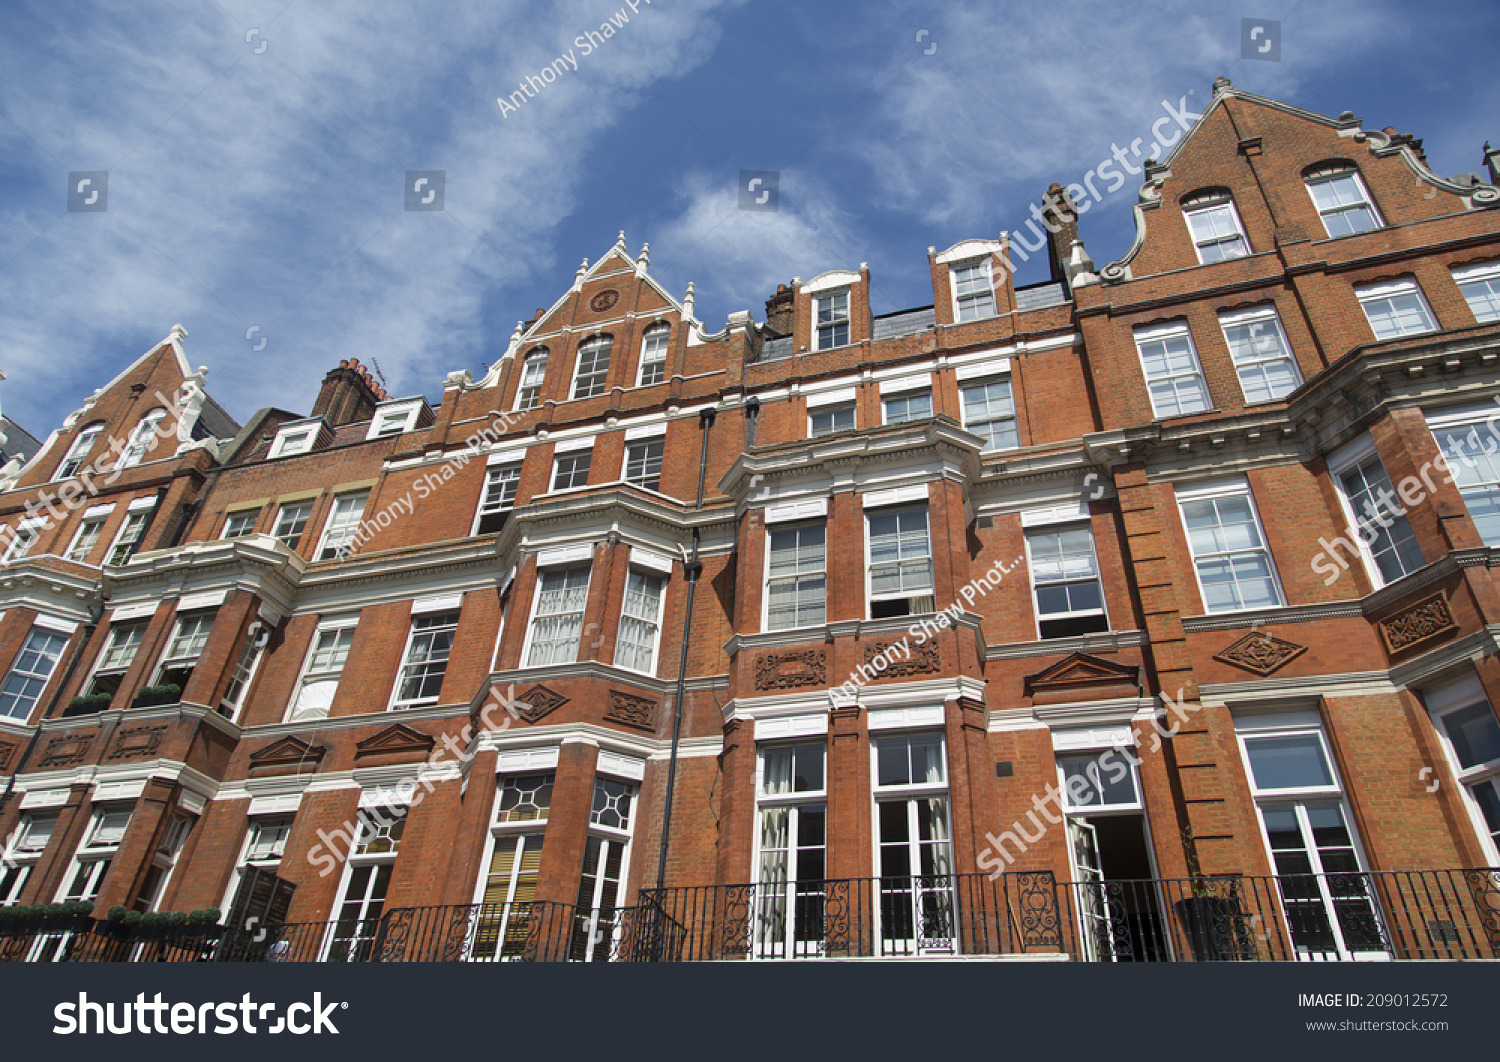 Row Red Brick Apartments Mayfair London Stock Photo (Royalty Free ...